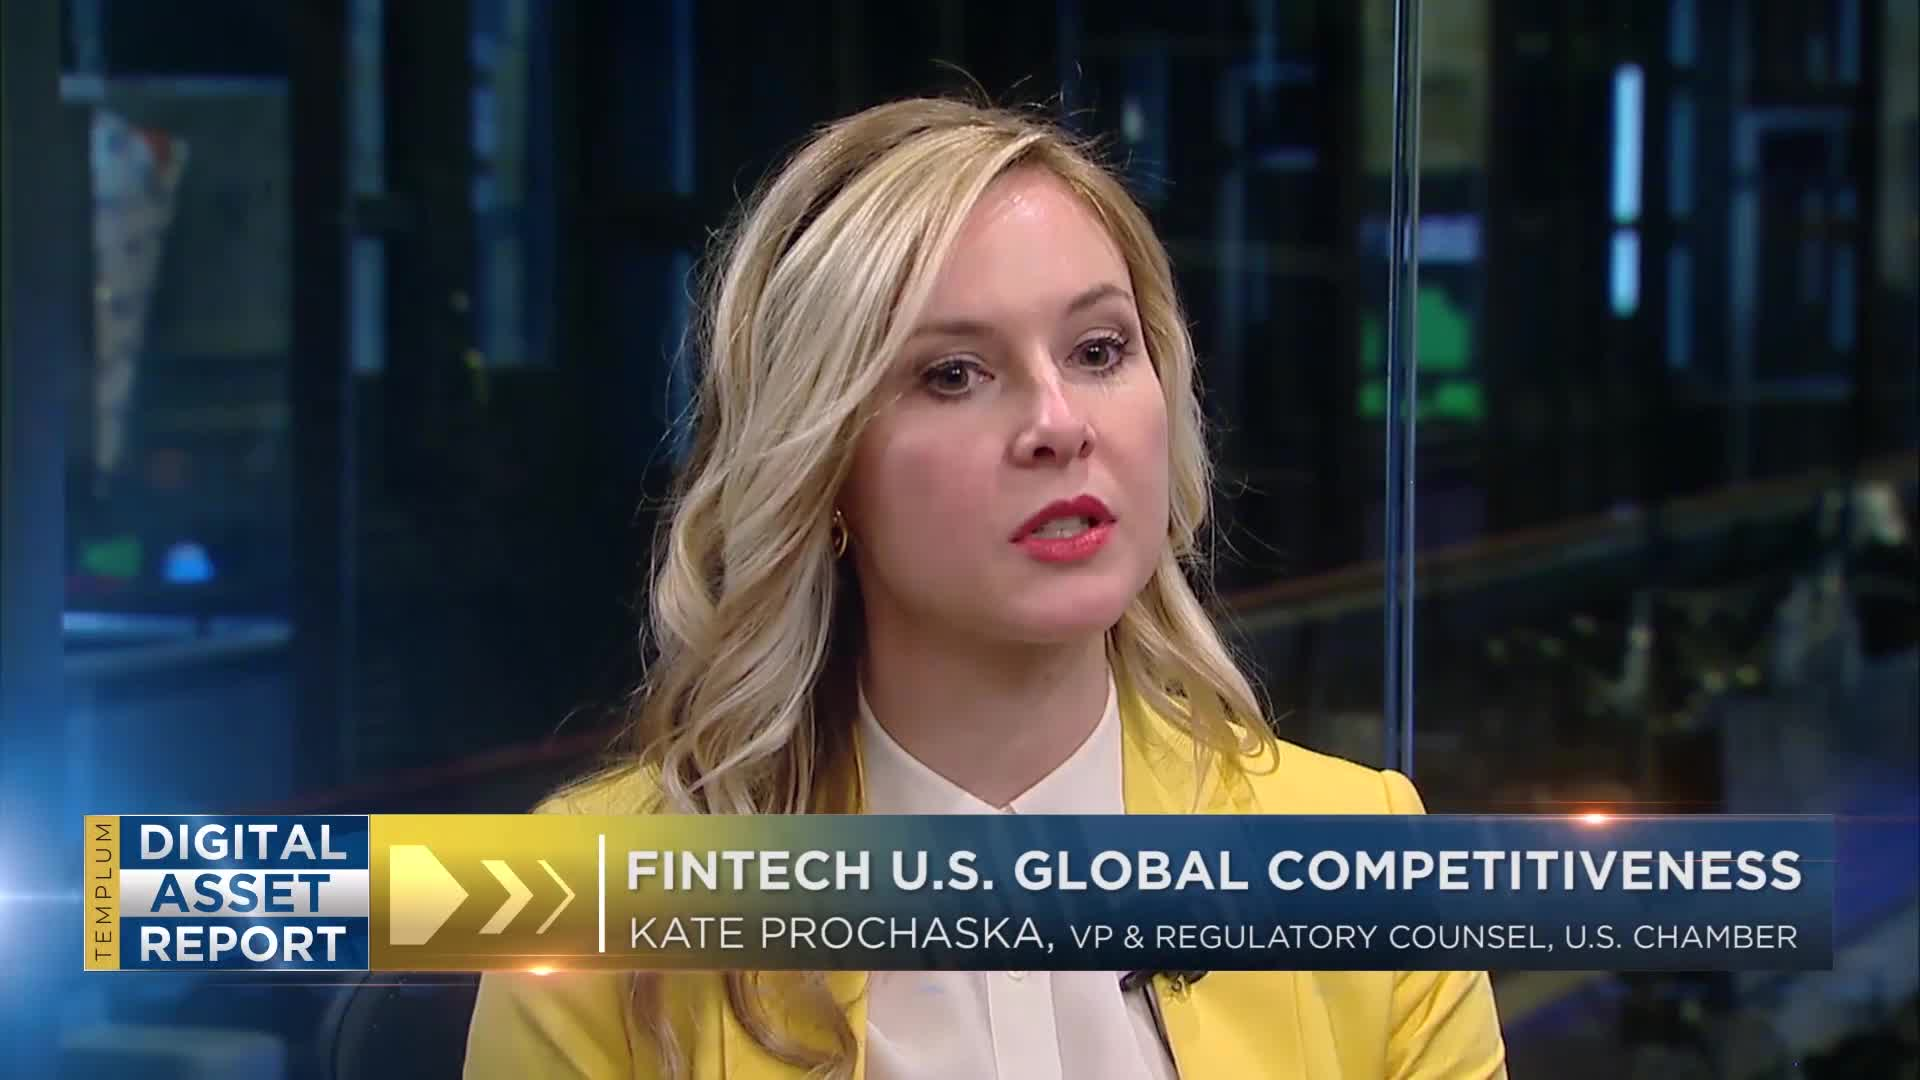 ISSUES_&_EXPERTS_KATE-PROCHASKA_FROM_US_CHANBER_OF_COMMERCE.mp4